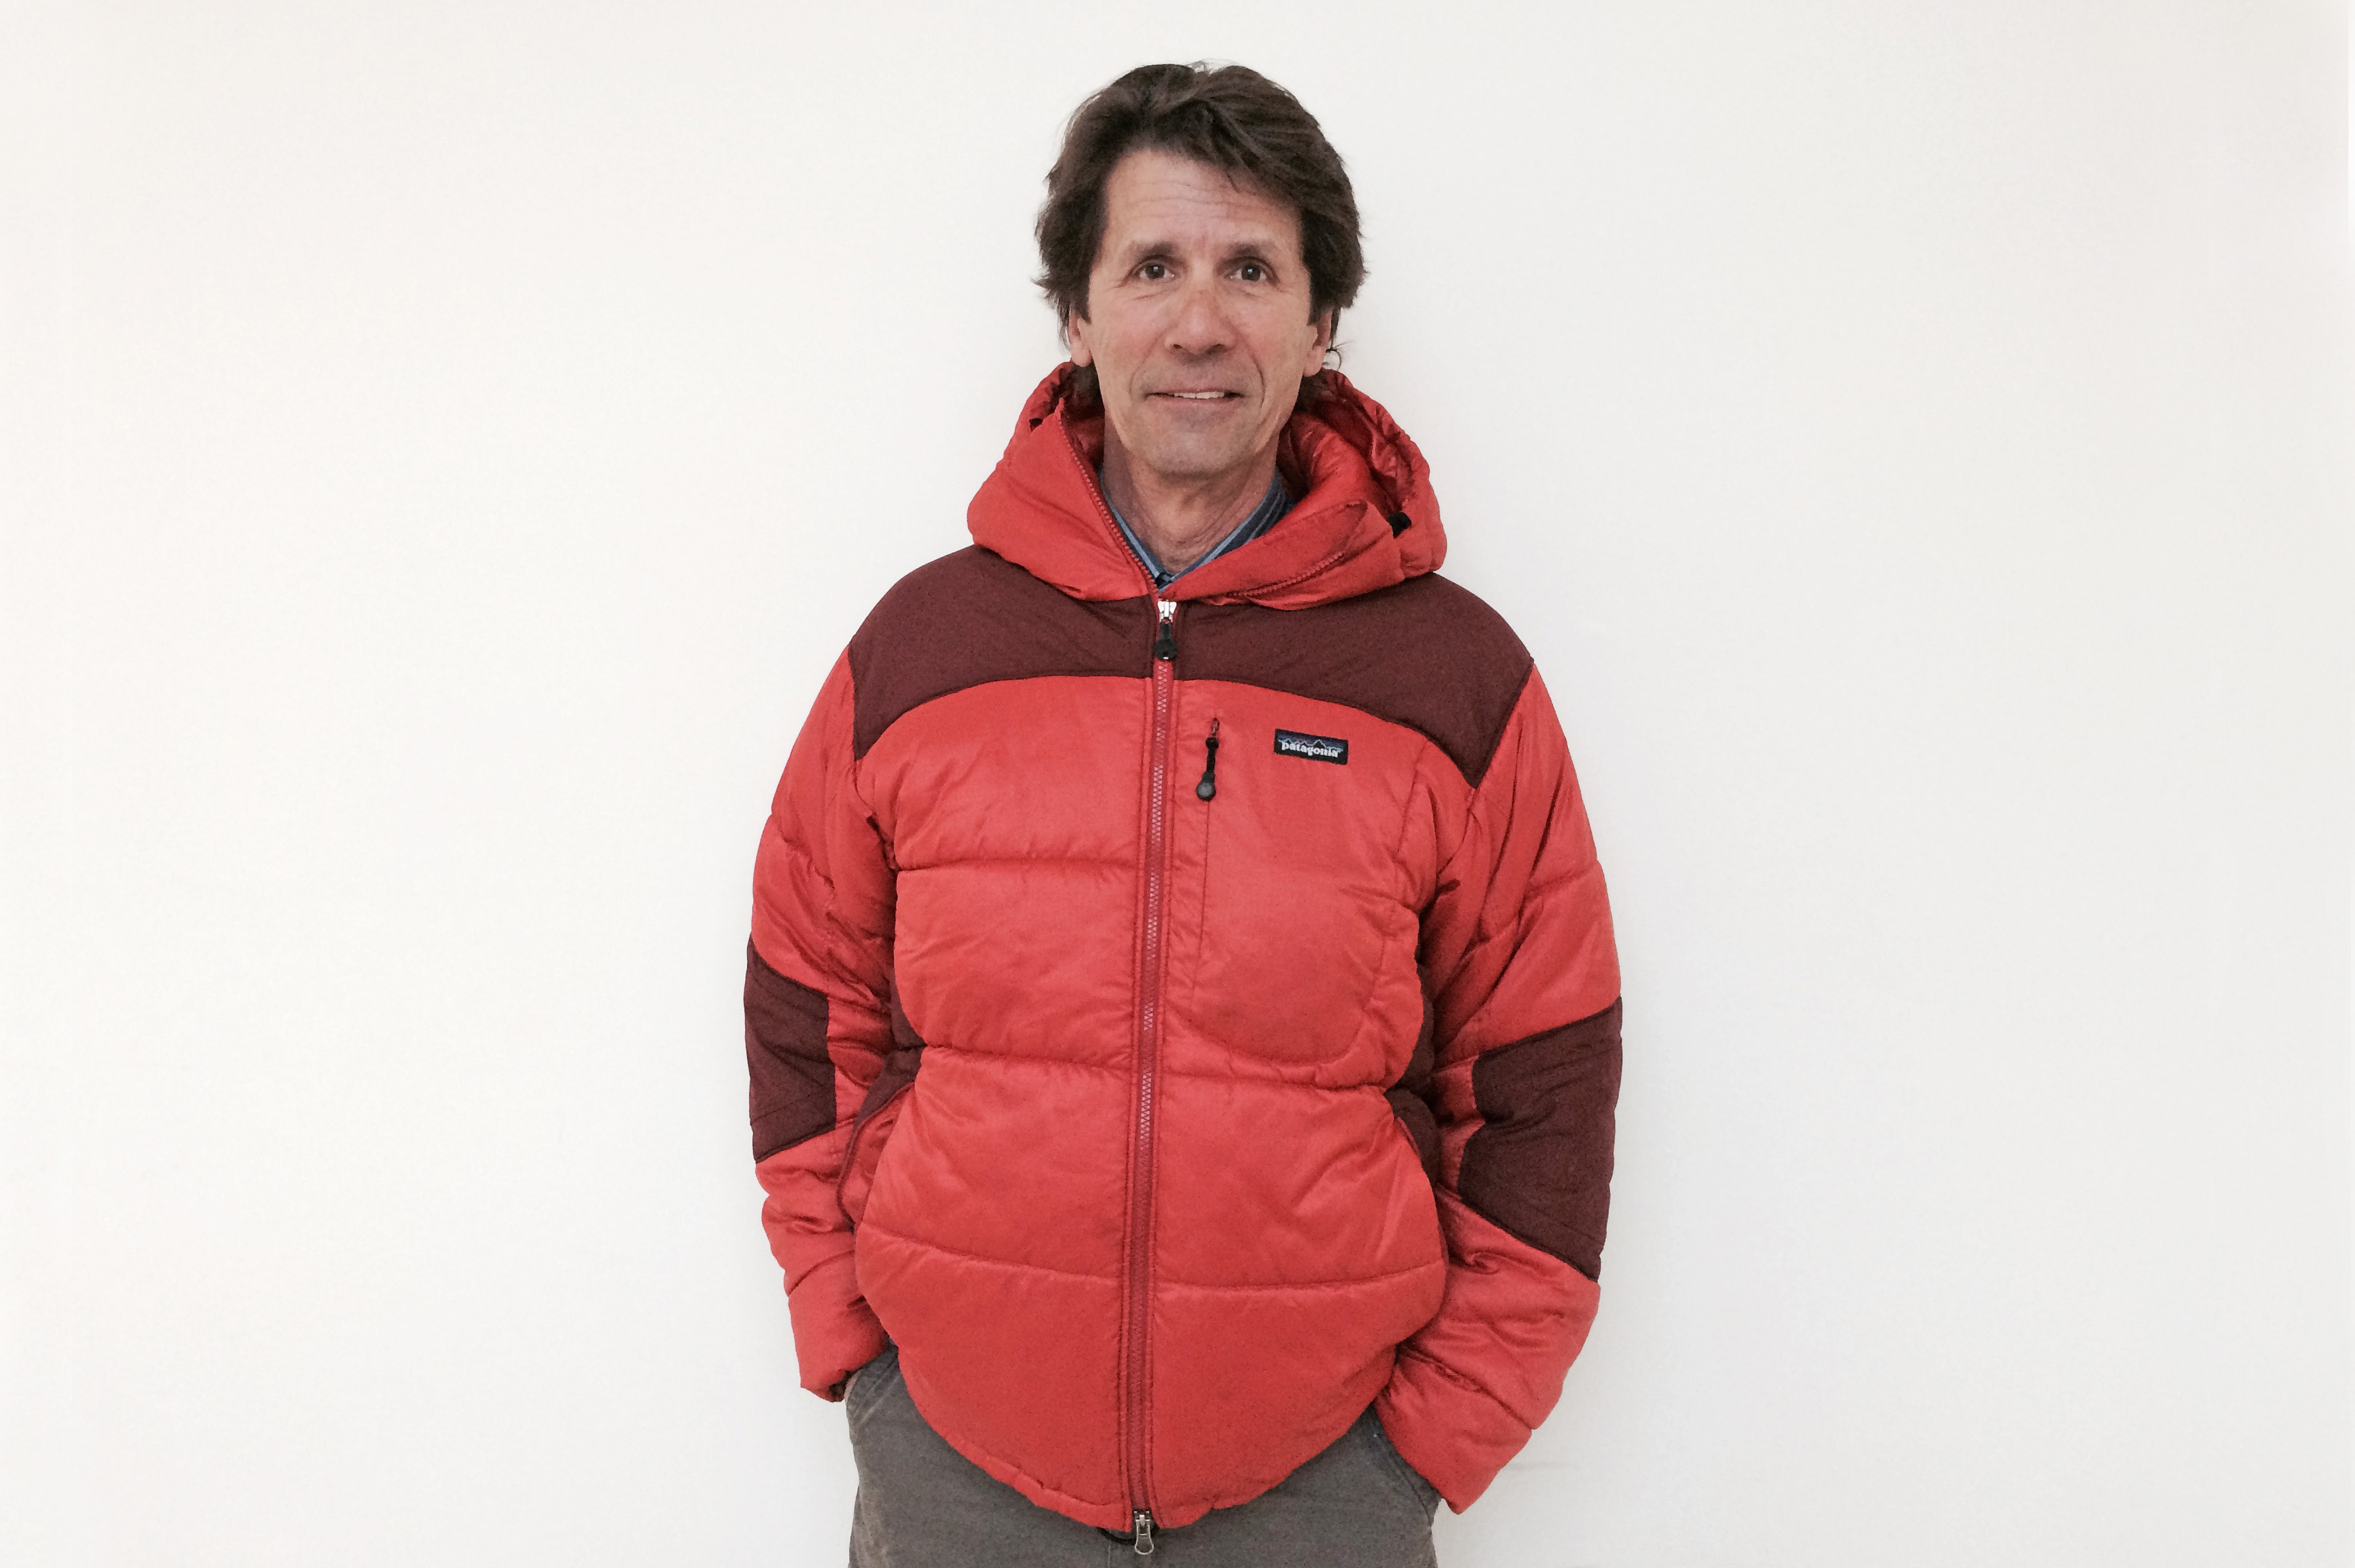 James Balog with hands in pants pockets, wearing zipped-up red parka